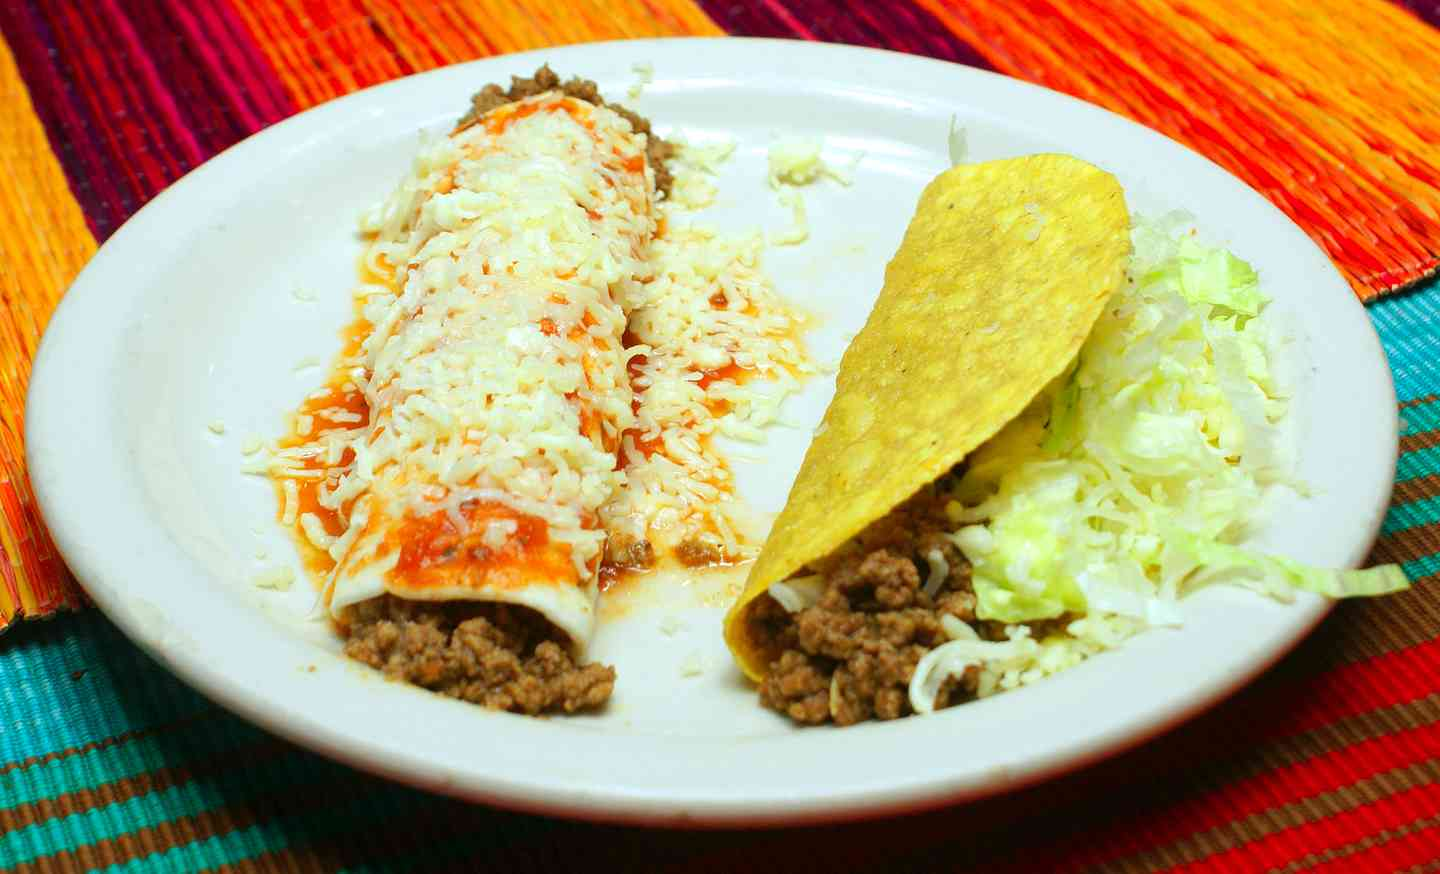 1. One taco with one burrito or enchilada